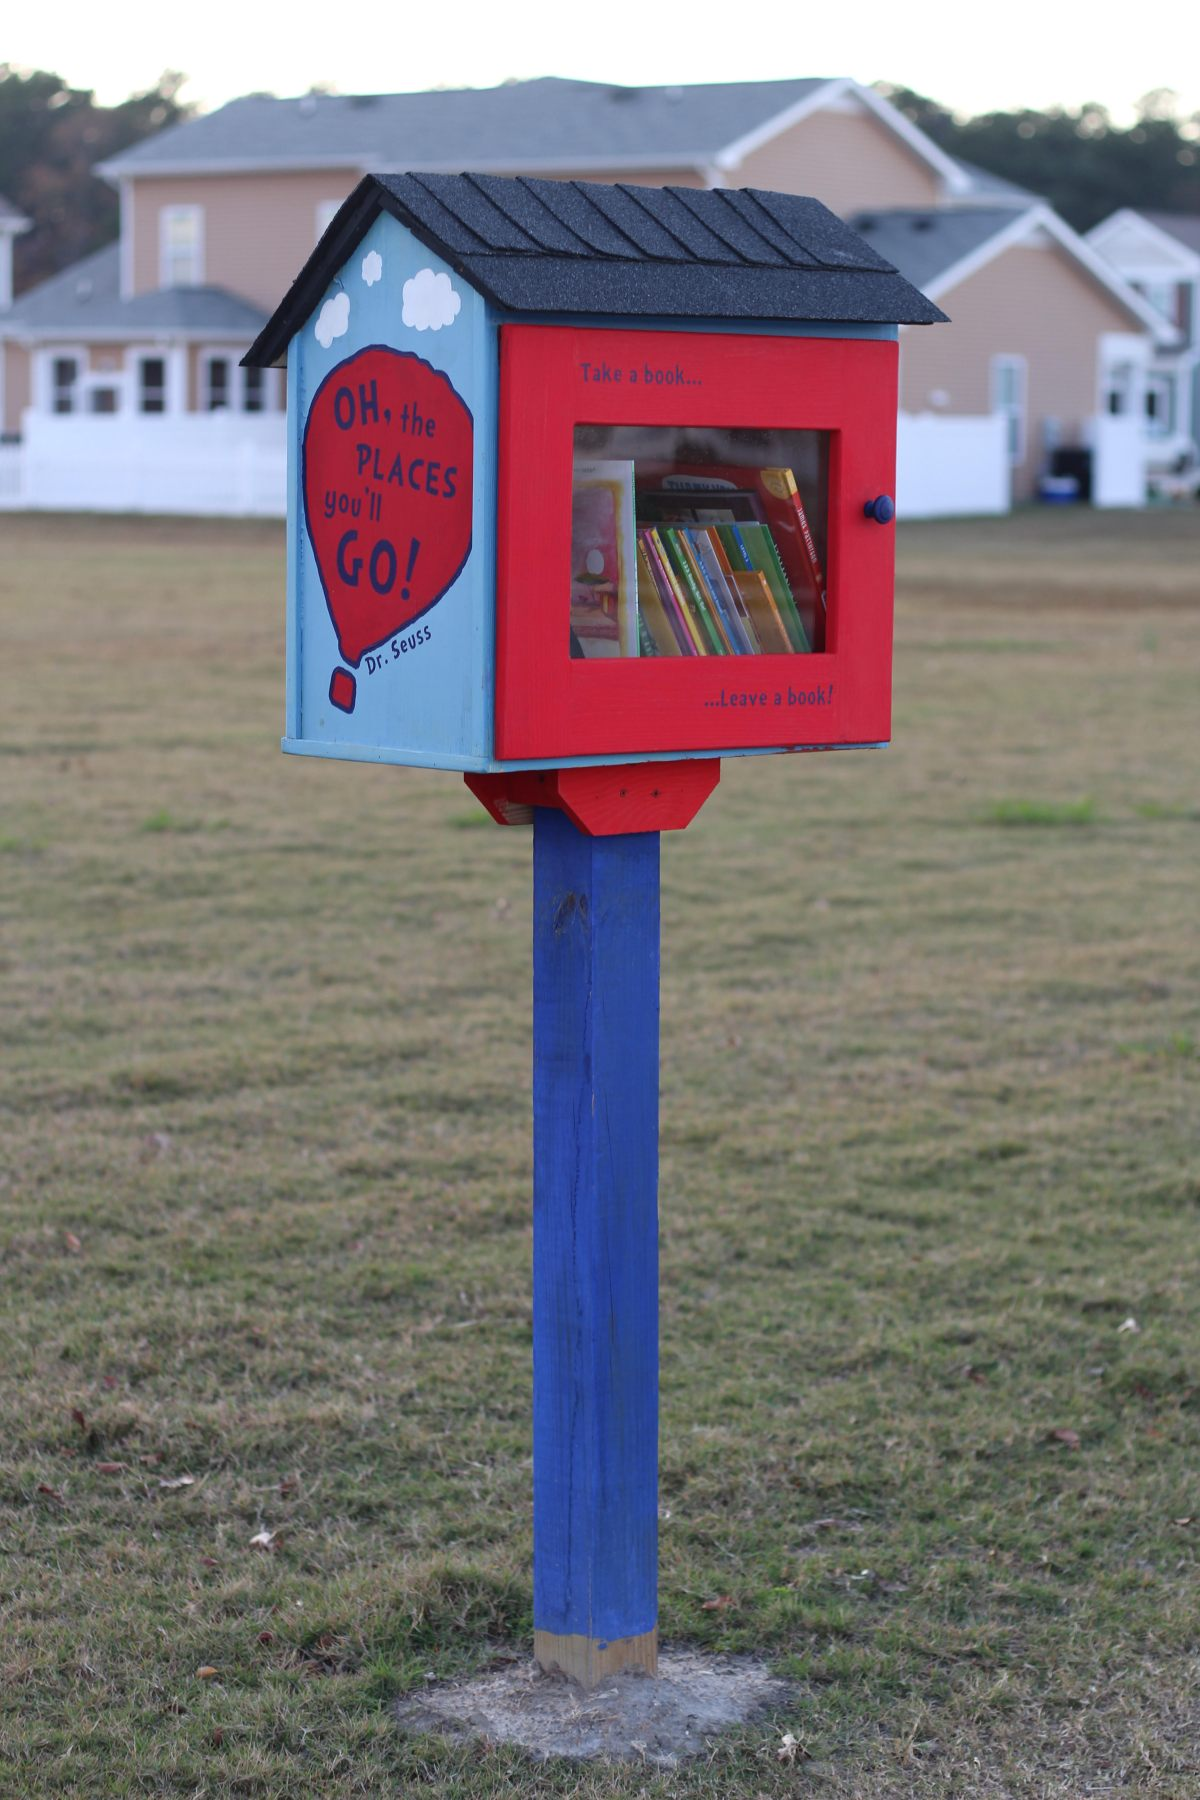 "A Little Free Library box sits atop a post in an open grass common area; a beige house can be seen in the background. The library box is brightly painted: the post is deep, bright blue; the door of the box is red, and has the phrase ""Take a book...Leave a book!"" printed on it in the same blue used to paint the post. The sides of the box are sky blue. The side that is visible features a red hot air balloon that says, ""Oh, the places you'll go!"" and an attribution to Dr. Seuss. The roof of the box is ""roofed"" with black asphalt shingles."